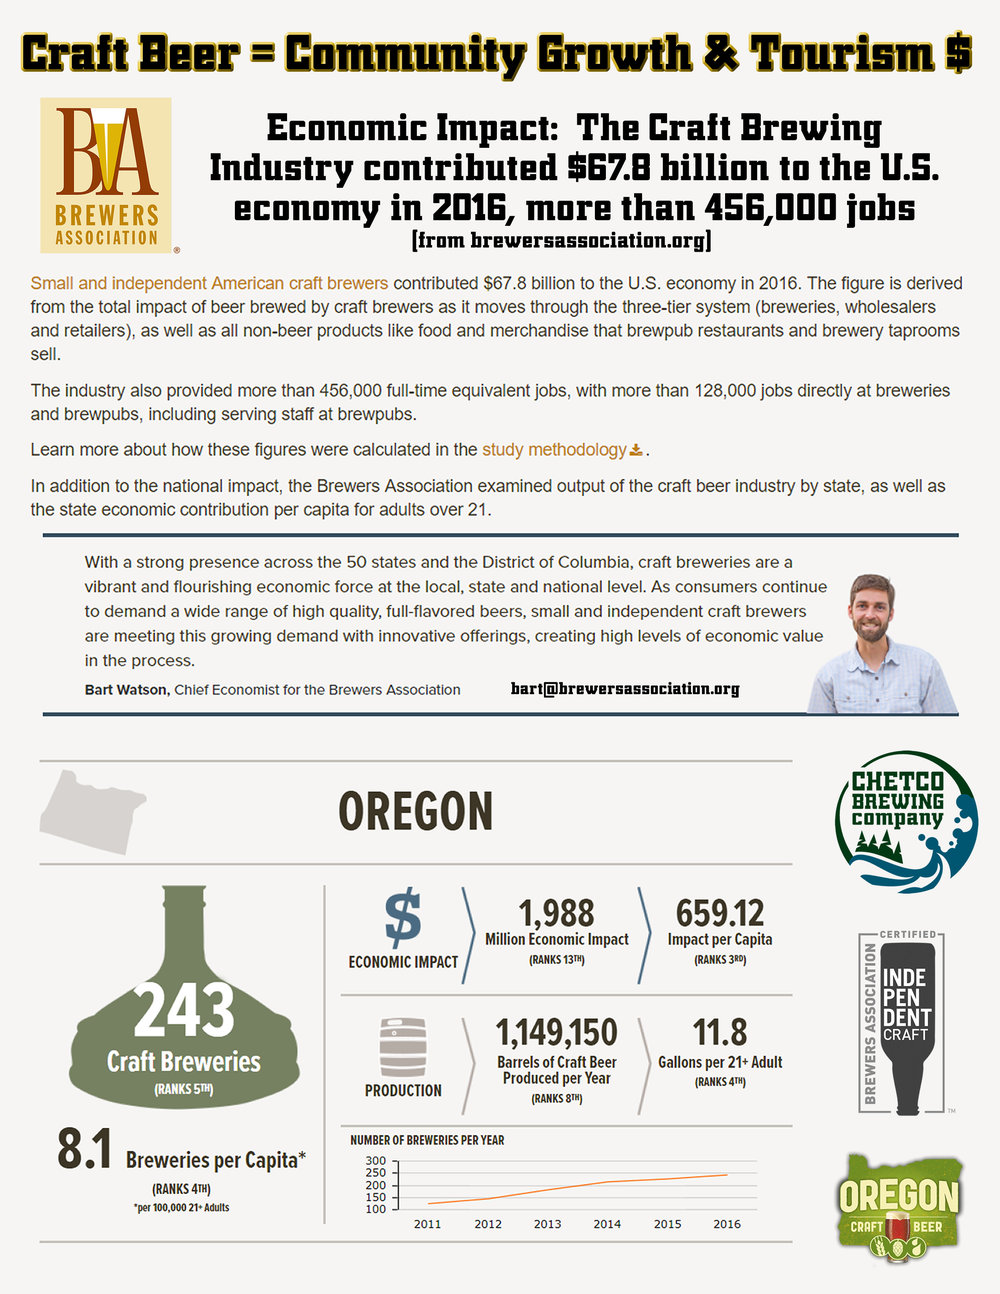 Craft Beer Economic Impact  flyer.jpg